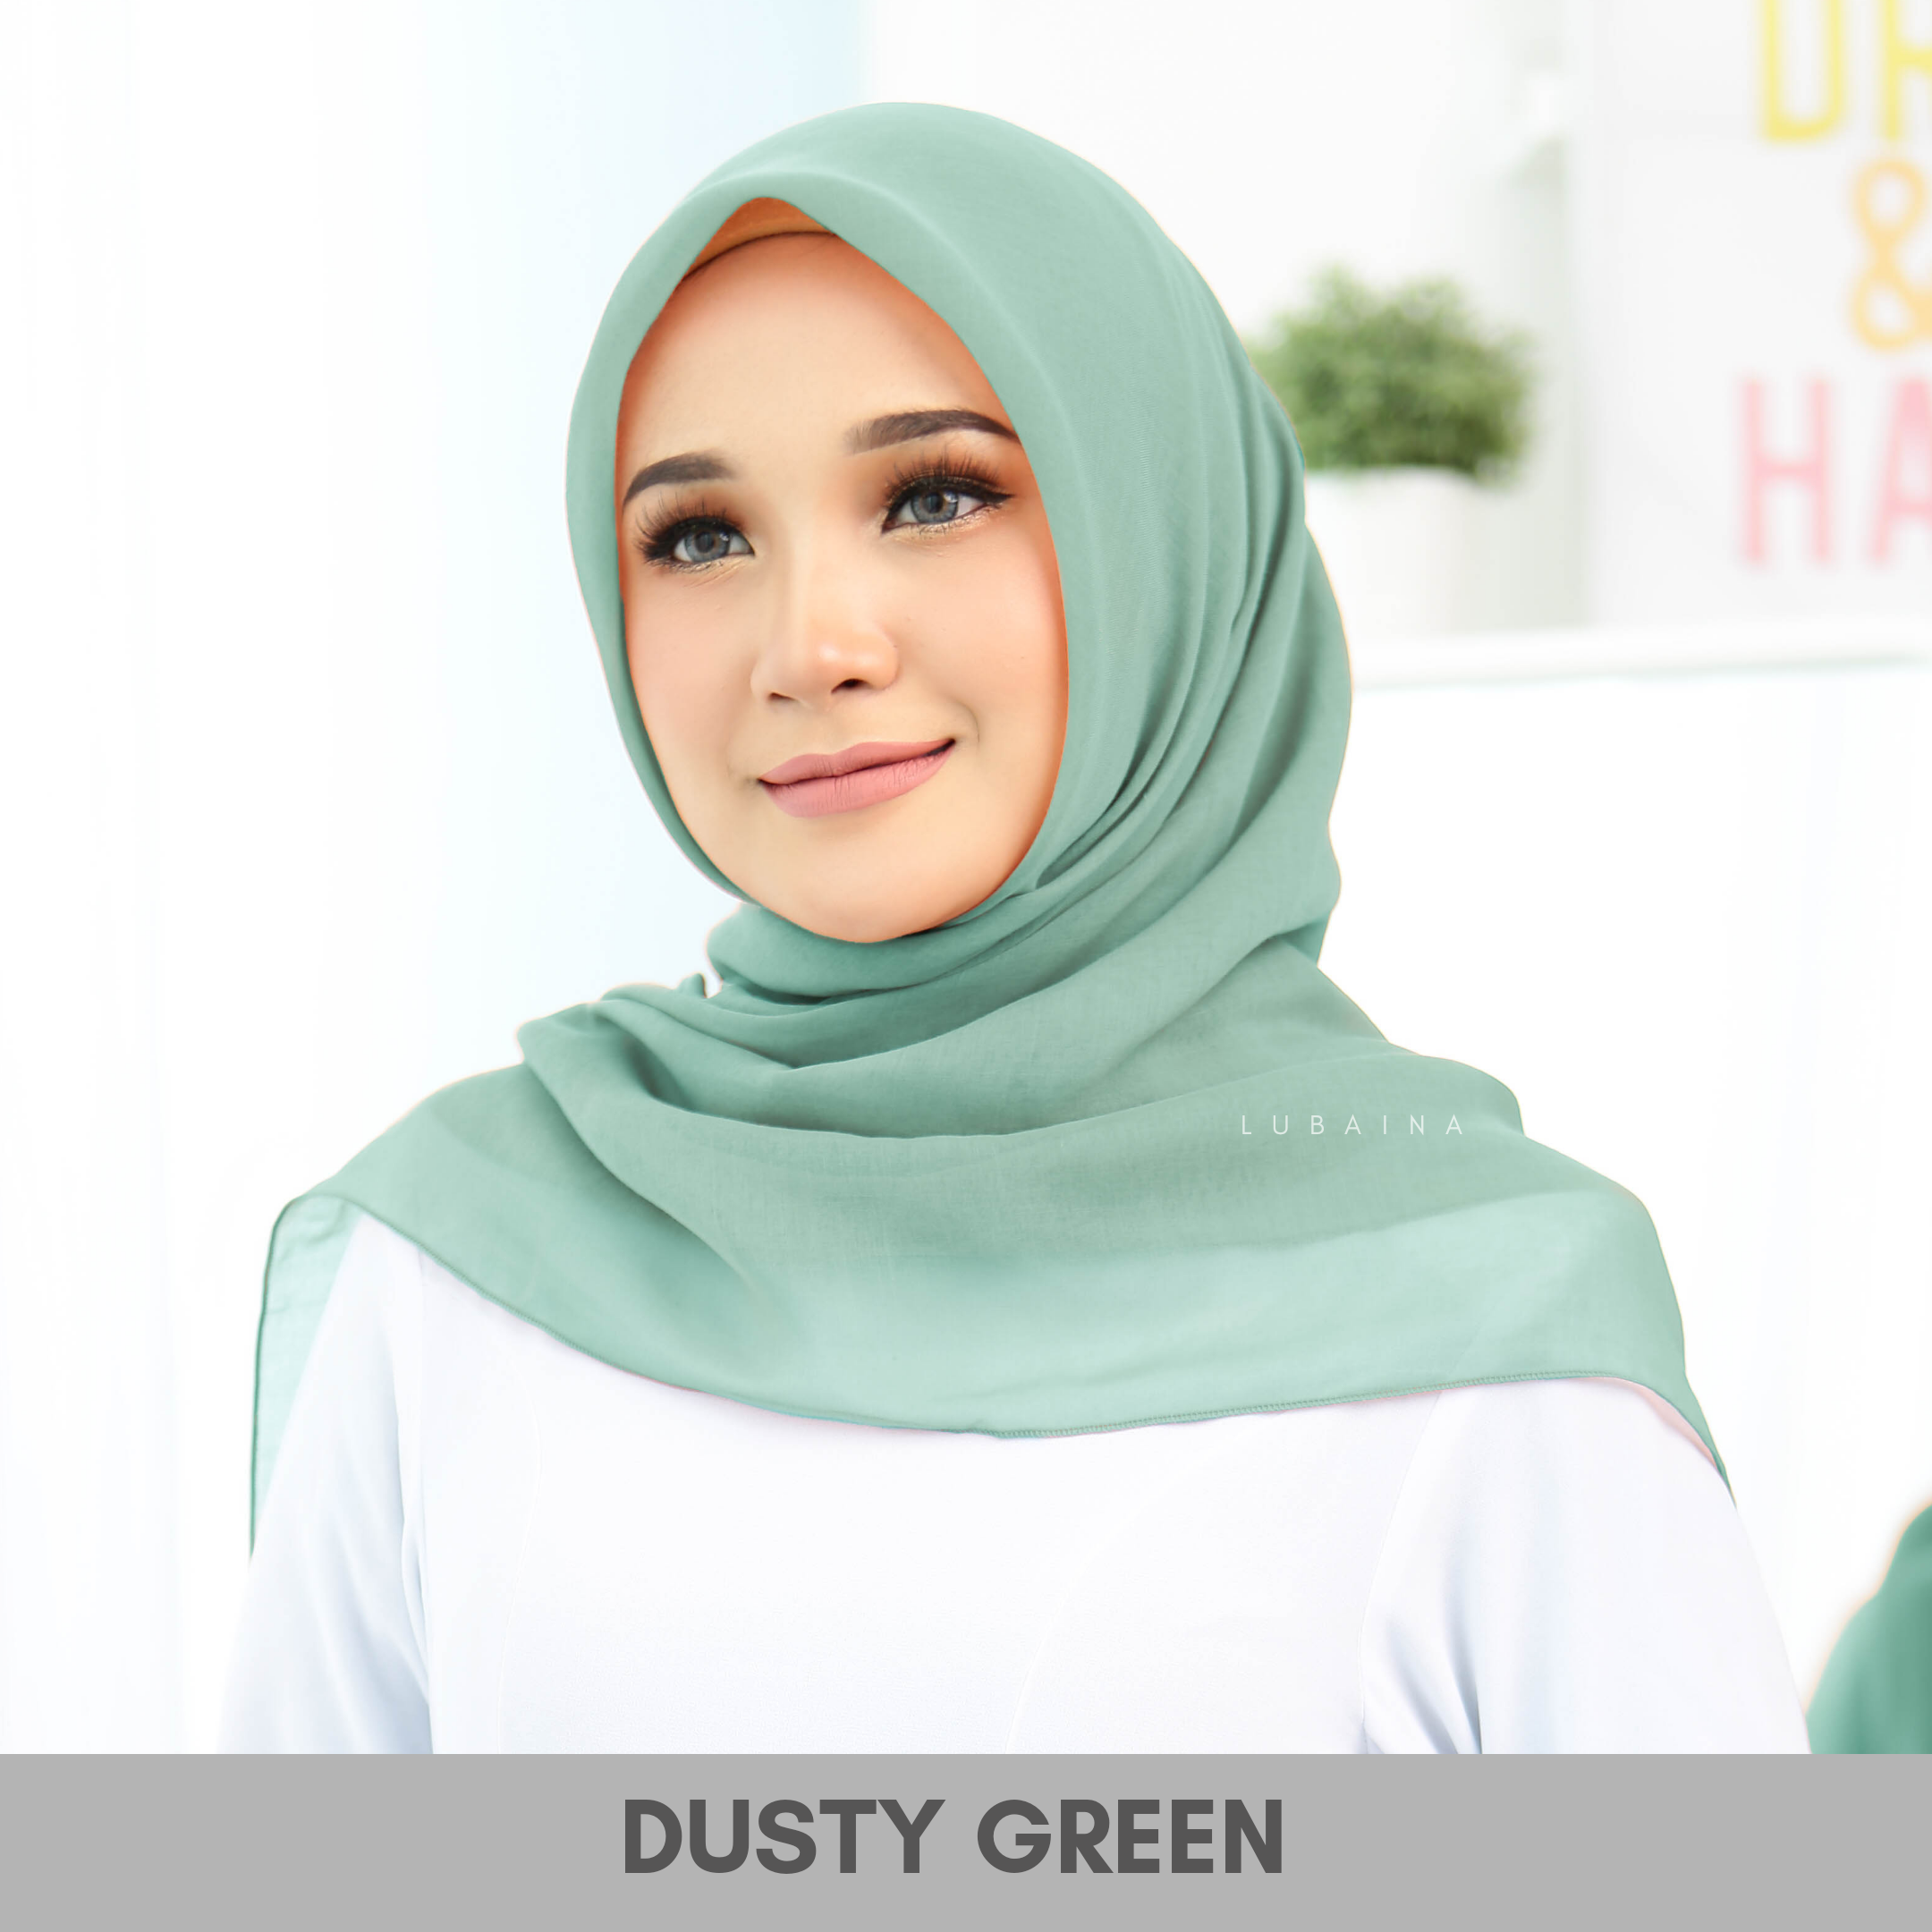 Bawal-Cotton-Lubaina-Dusty-Green.png